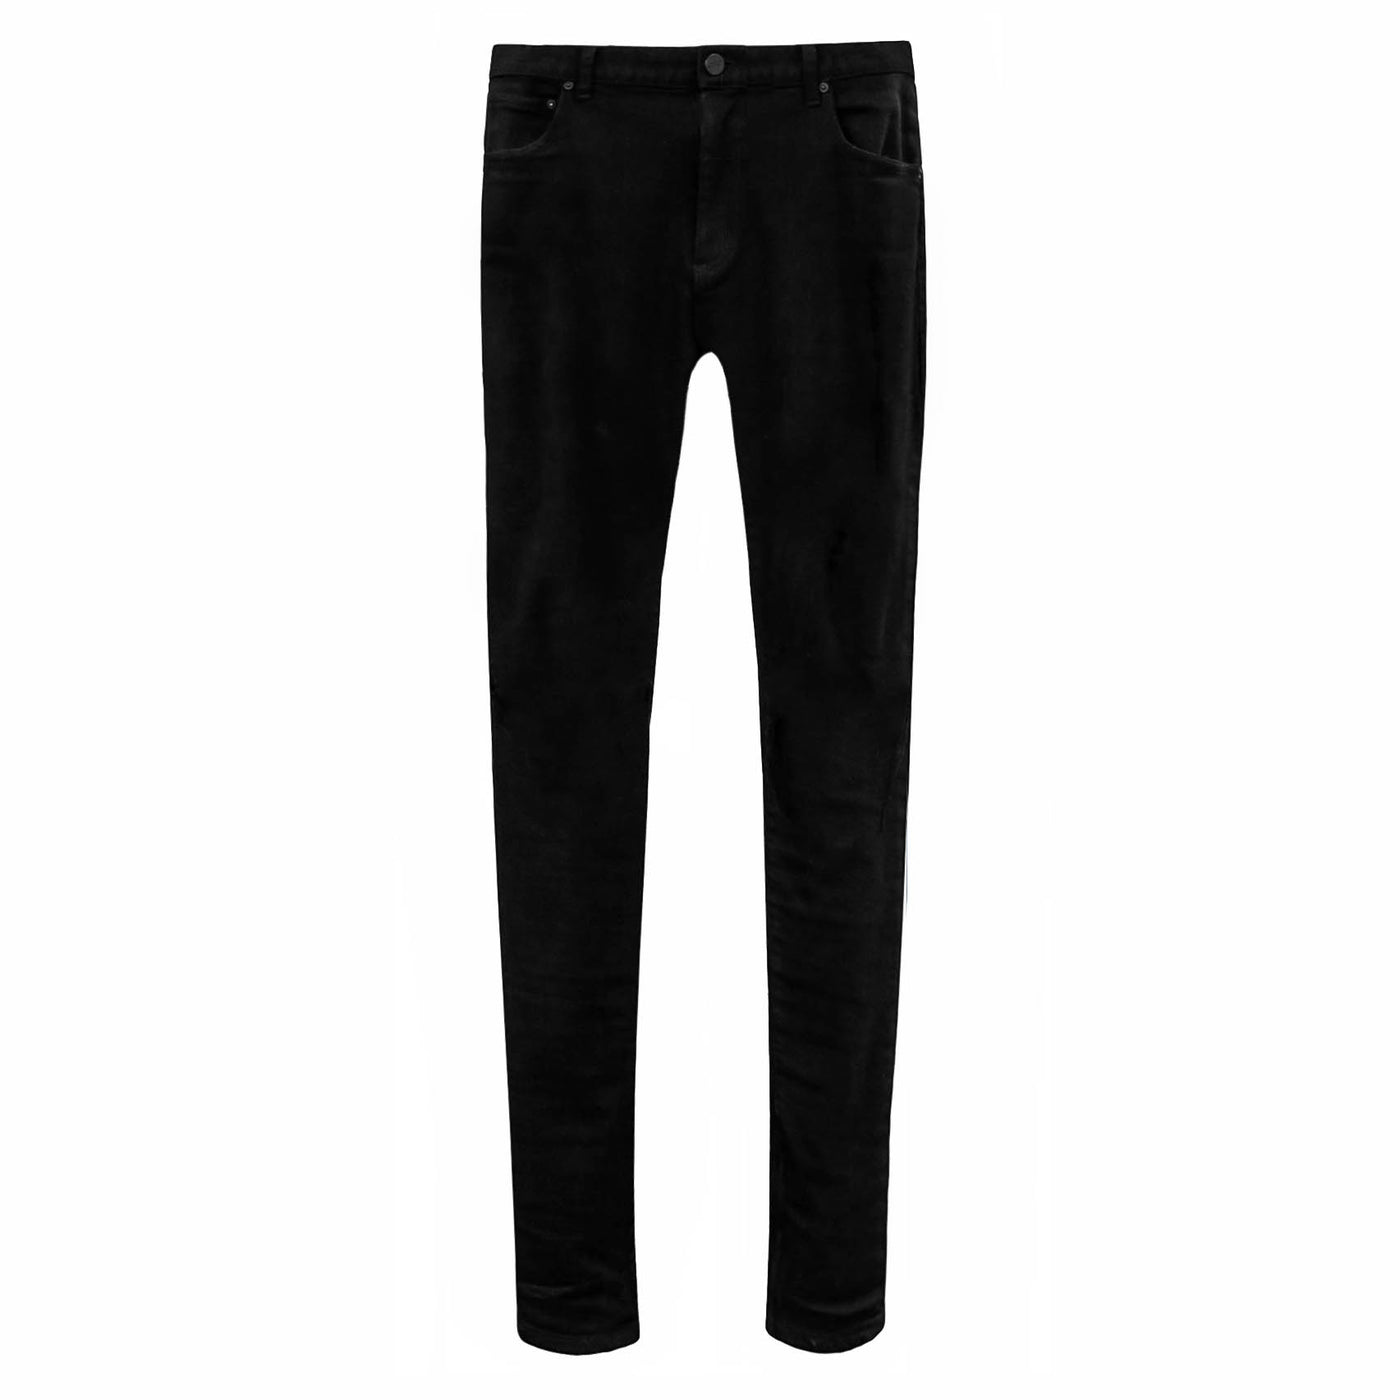 THE CLASSIC BLACK DENIM